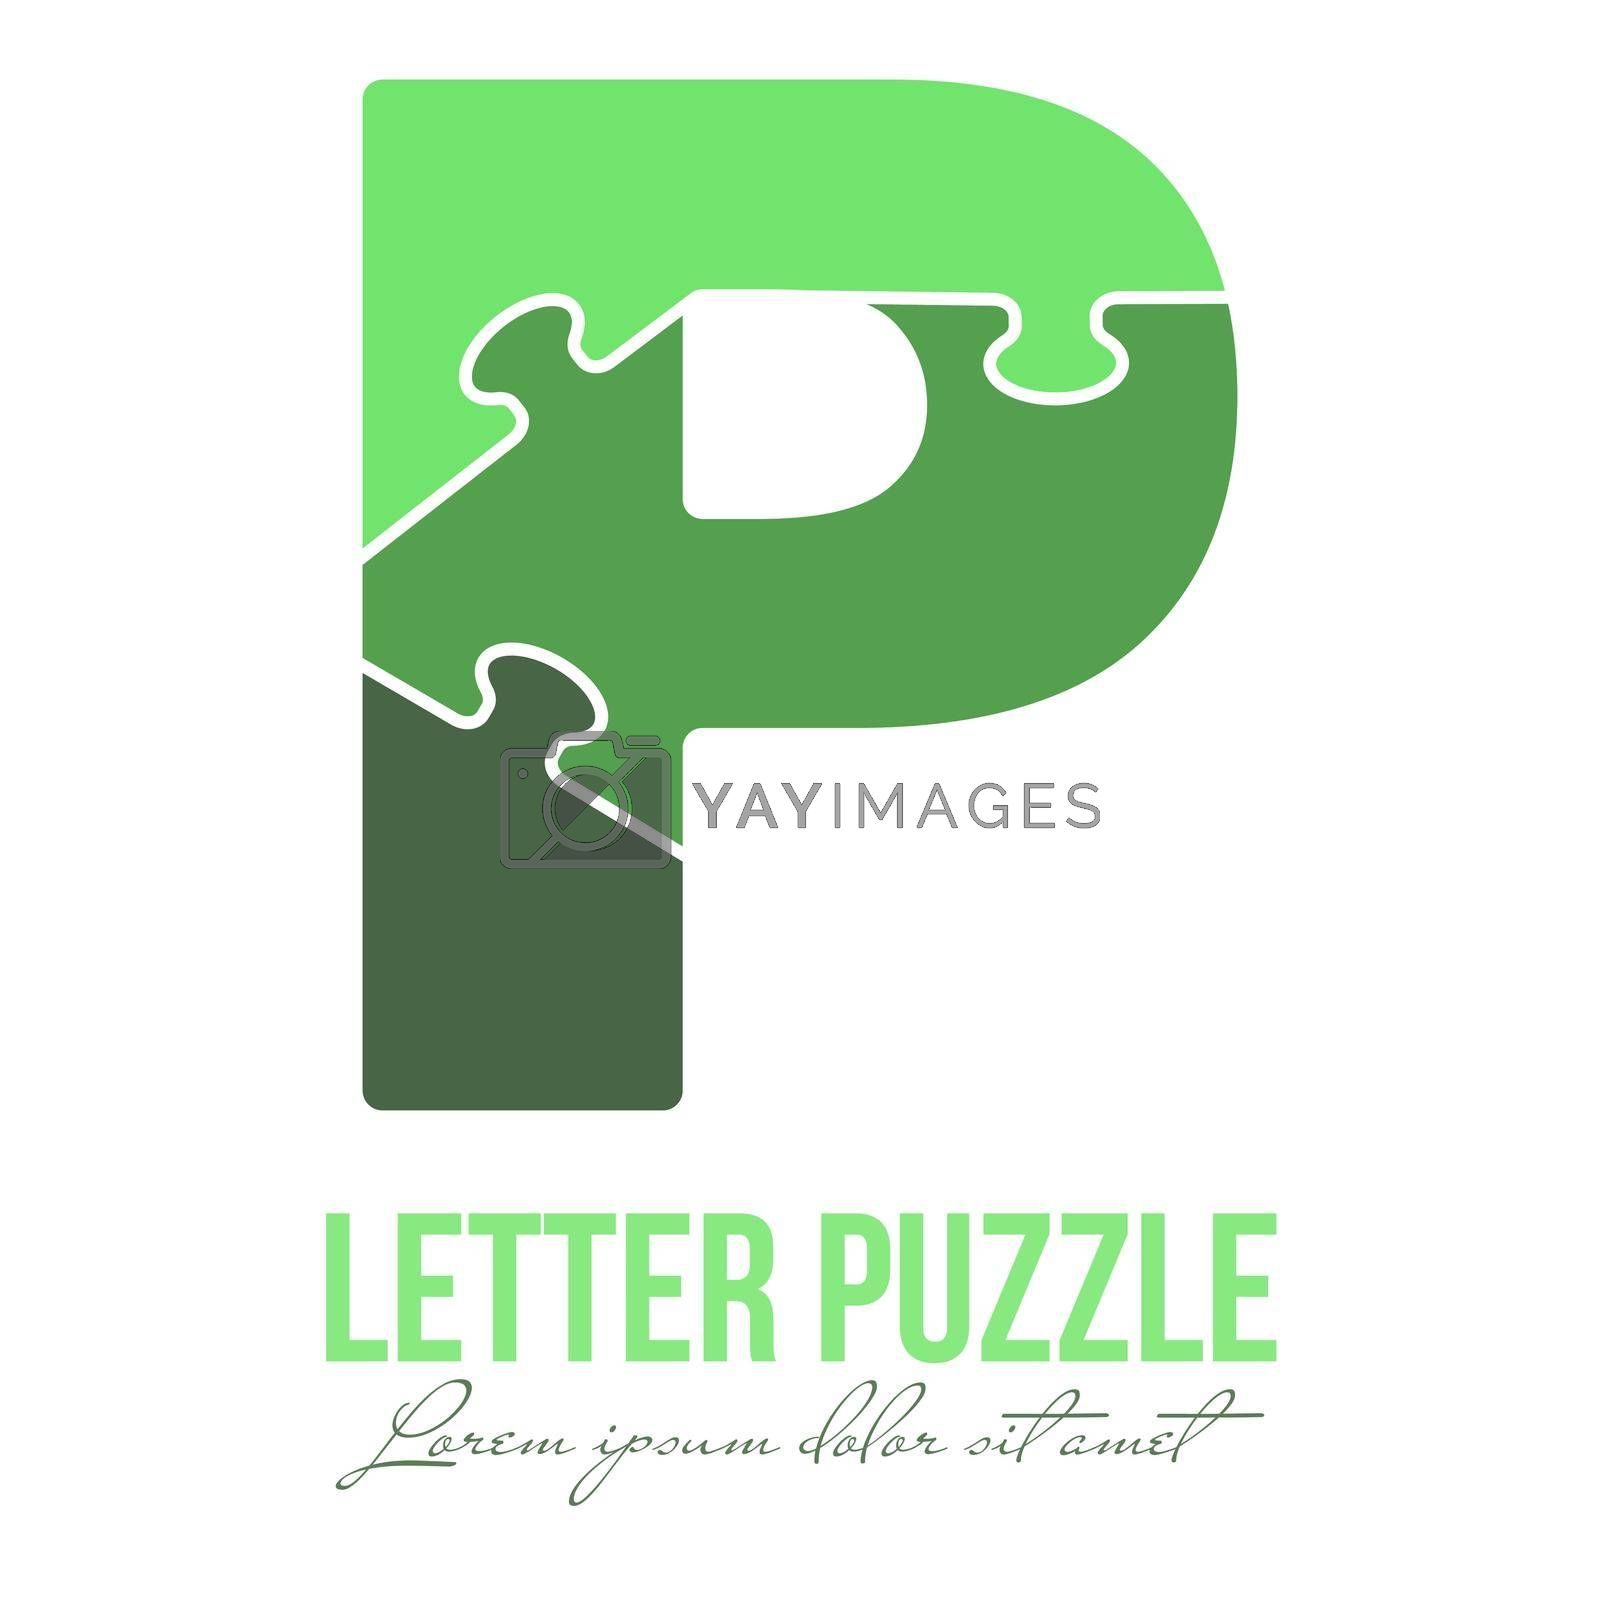 Letter P is made up of puzzles. Vector illustration for logo, brand logo, sticker or scrapbooking, for education. Simple style.